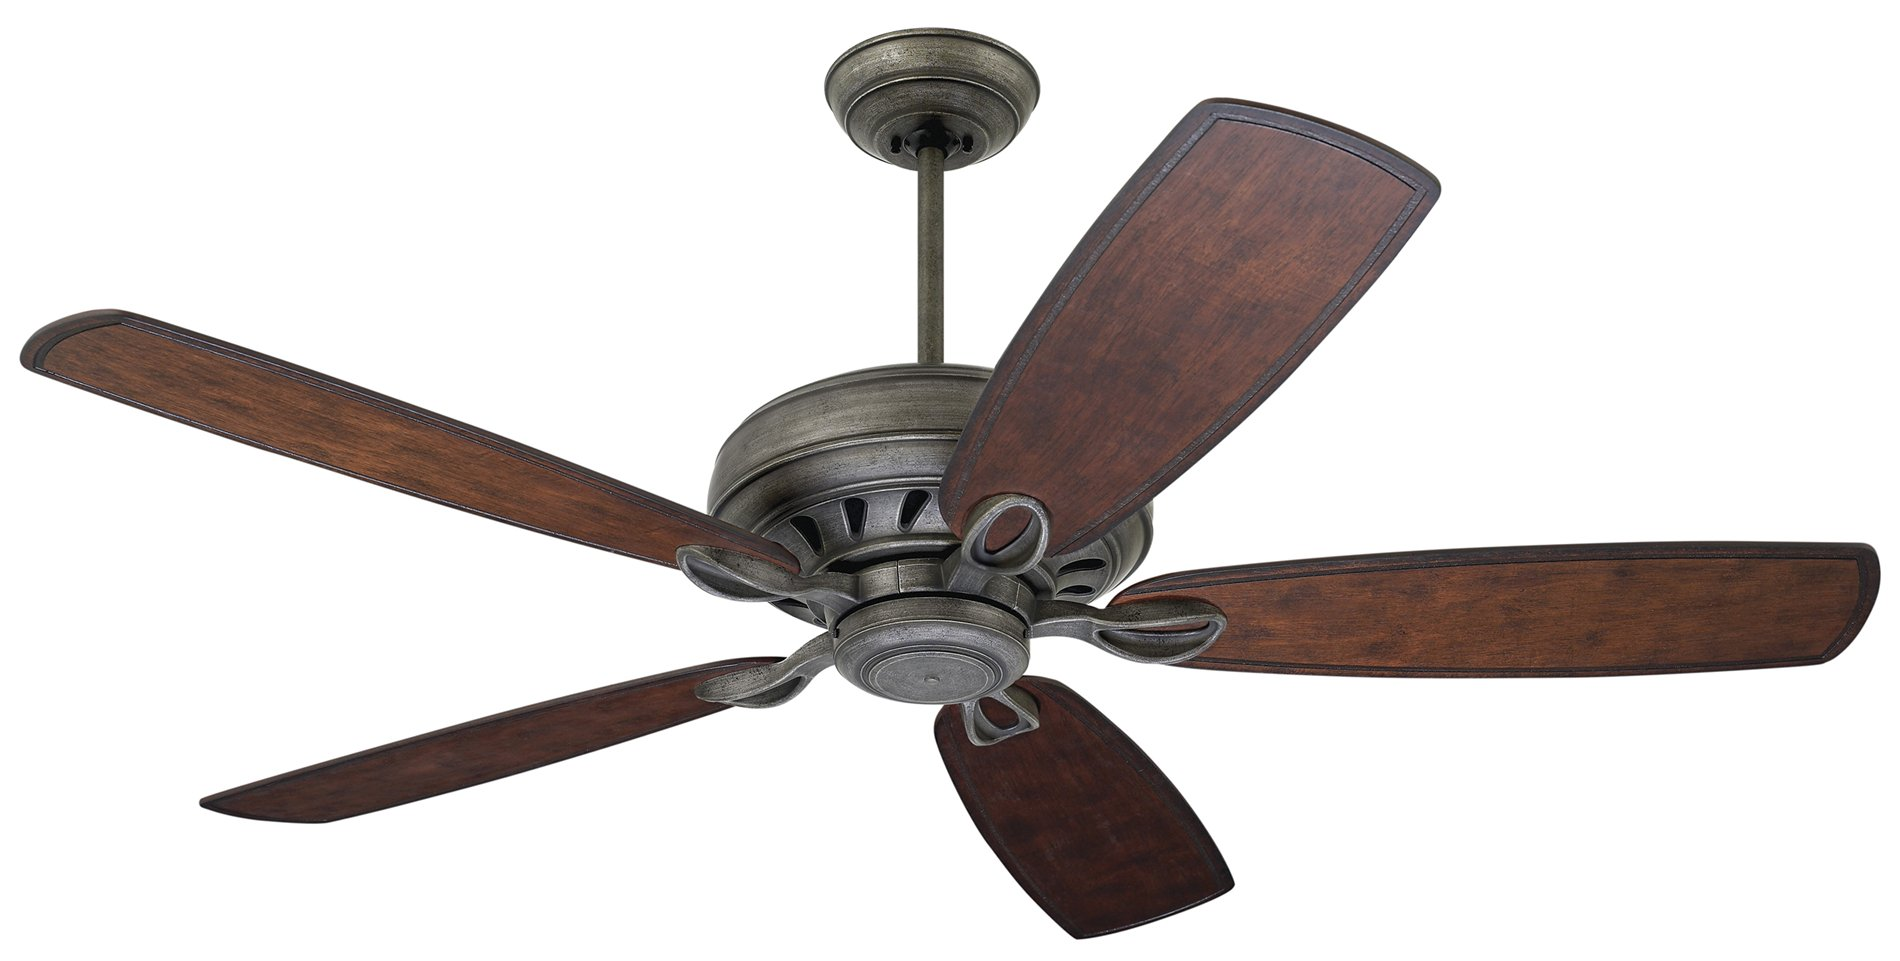 Emerson cf5100 penbrooke select transitional ceiling fan motor only brushed mozeypictures Choice Image